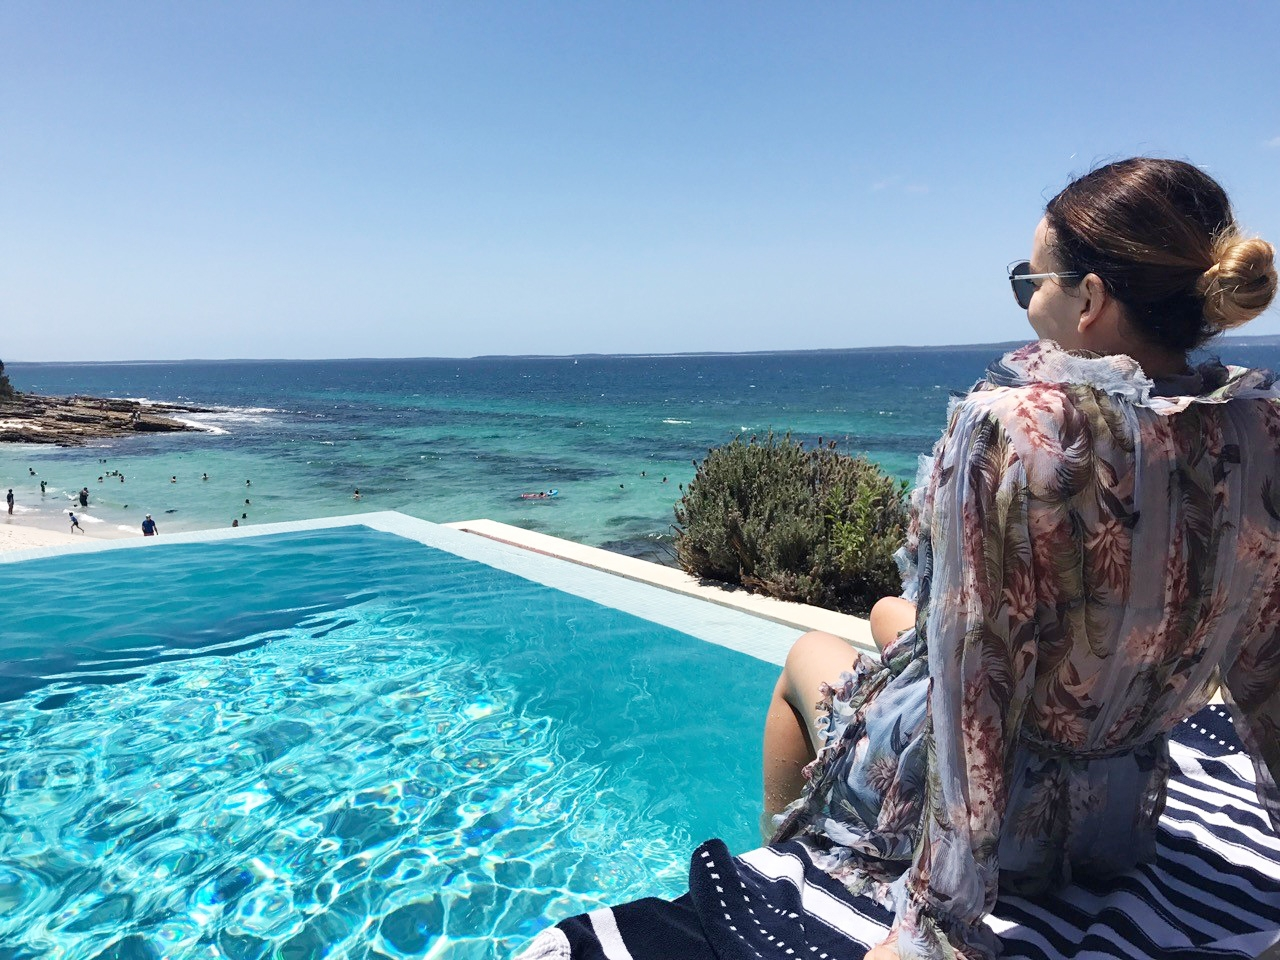 Marnie sitting by the pool, looking down at the turquoise sea below